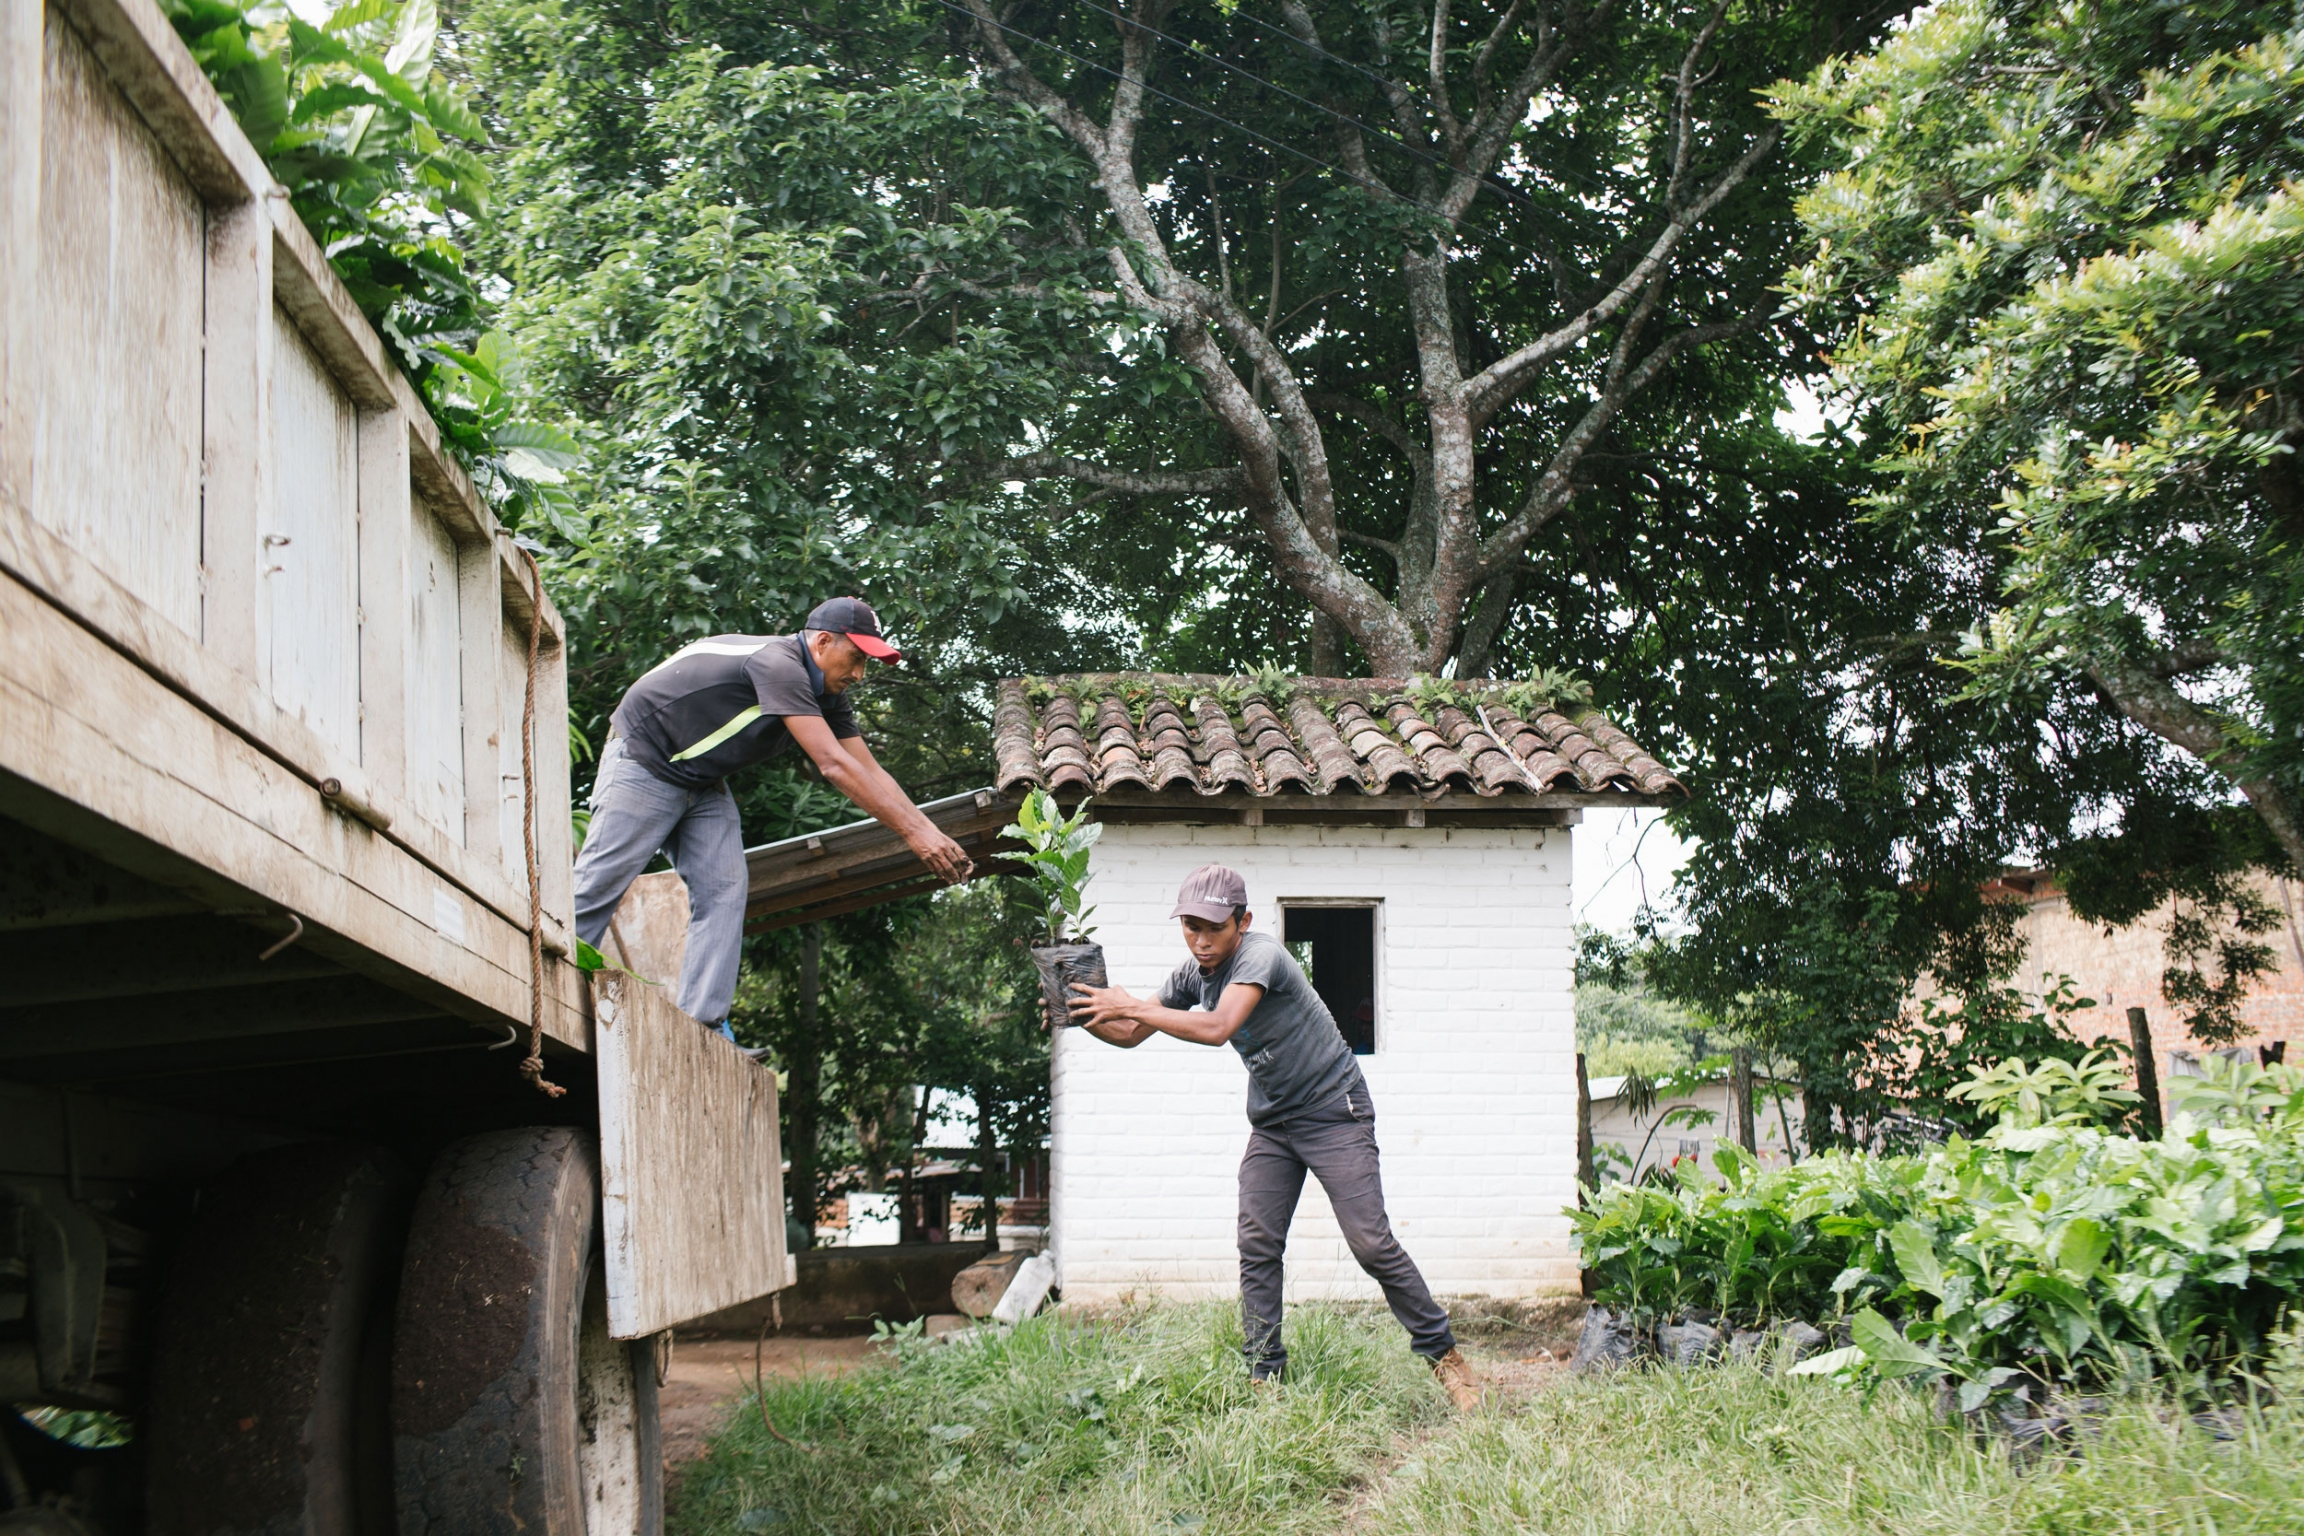 Two coffee workers are shown unloading small plants from the back of a truck.